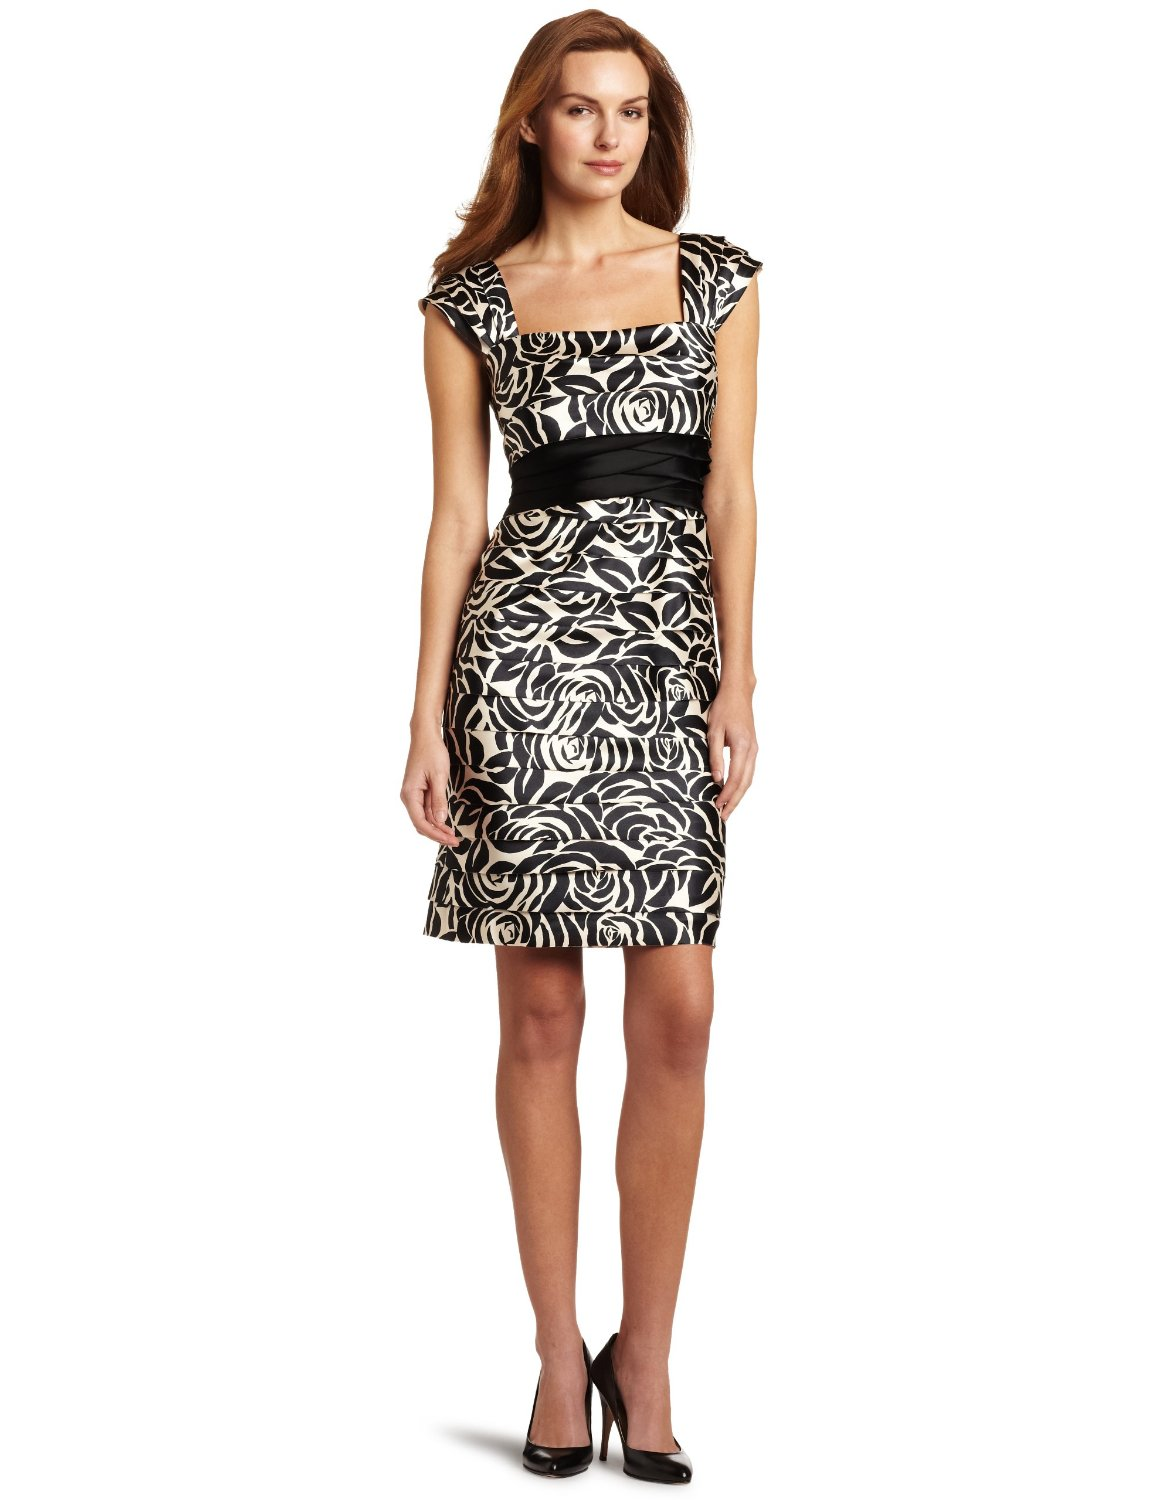 dress4cutelady printed stretch satin shutter dress jones new york. Black Bedroom Furniture Sets. Home Design Ideas